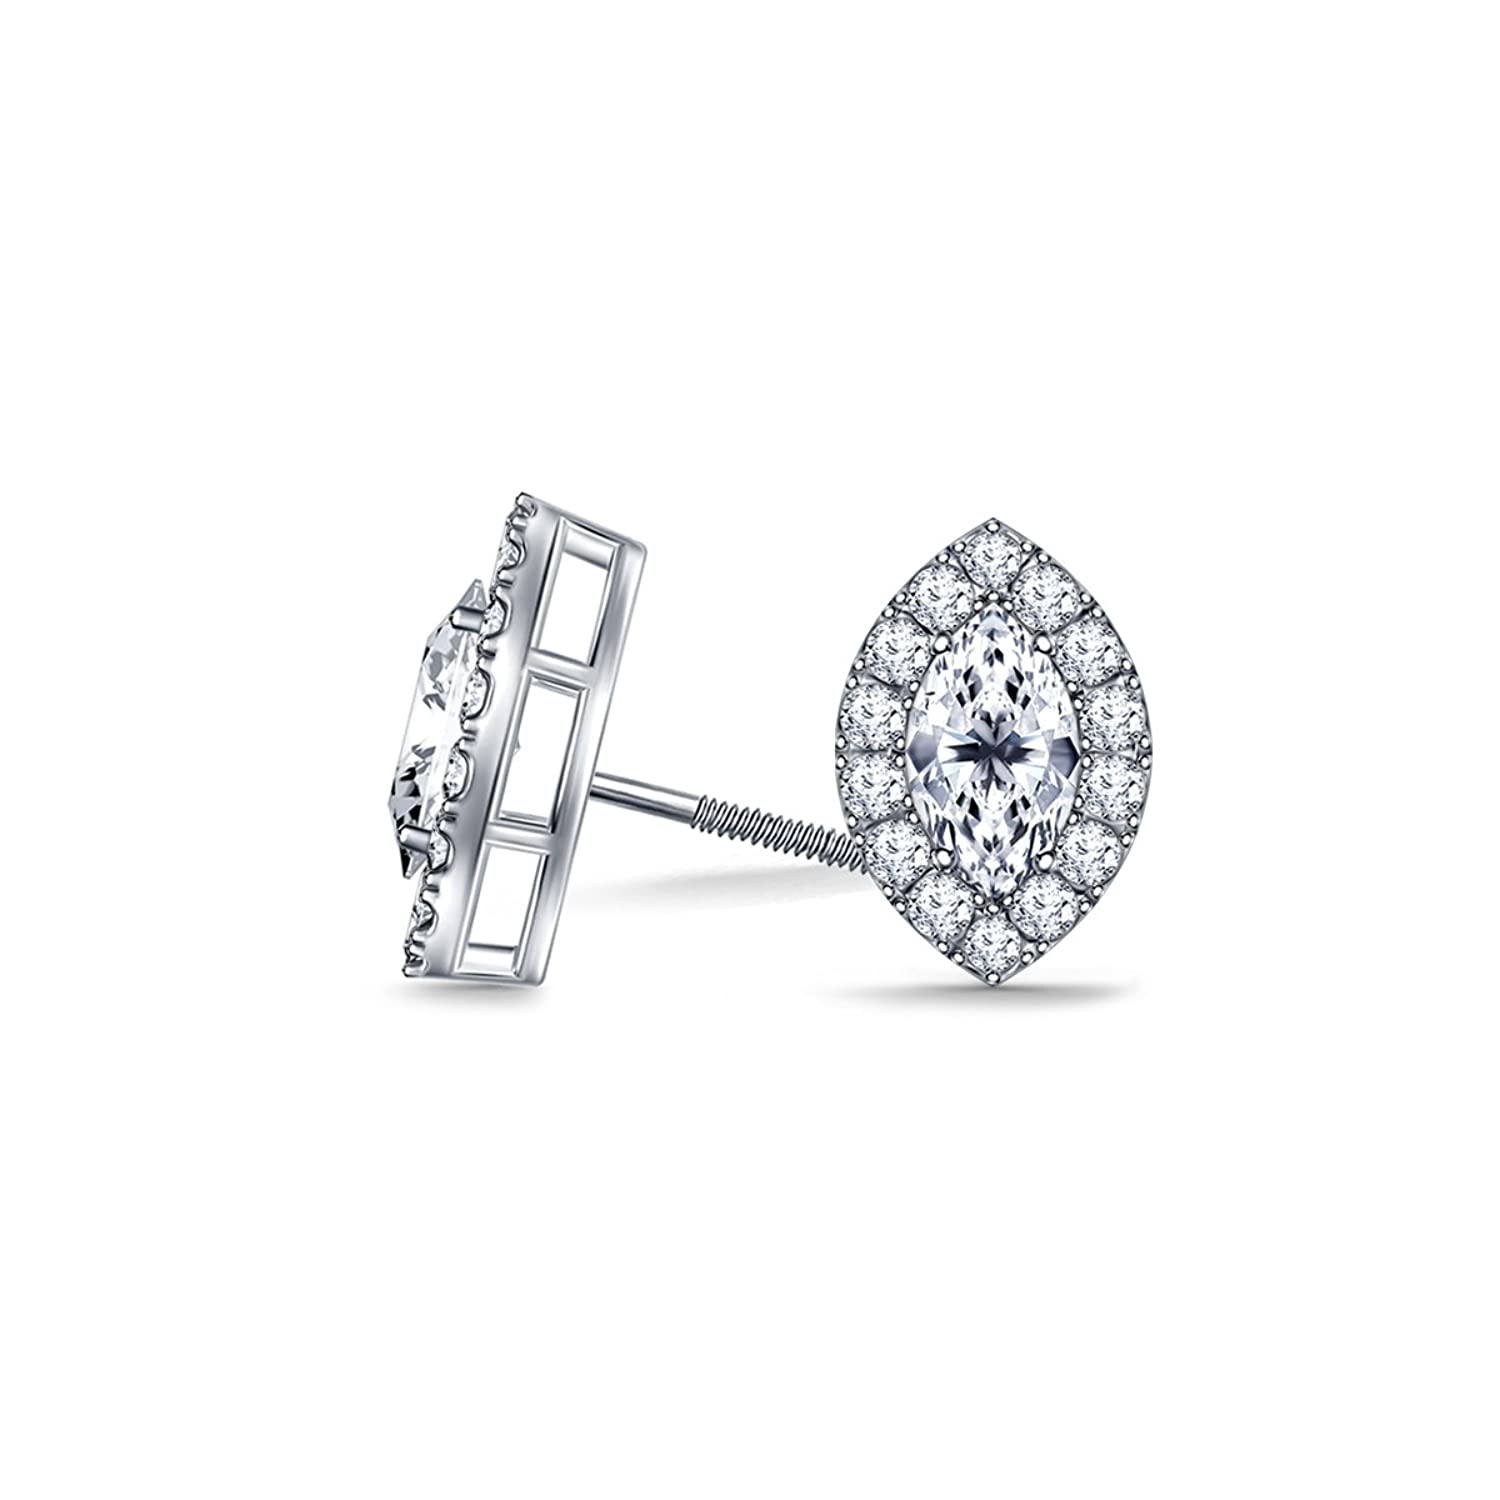 Smjewels 1.00 Ct Marquise & Round Cut Sim Diamond Halo Earrings In 14K White Gold Over